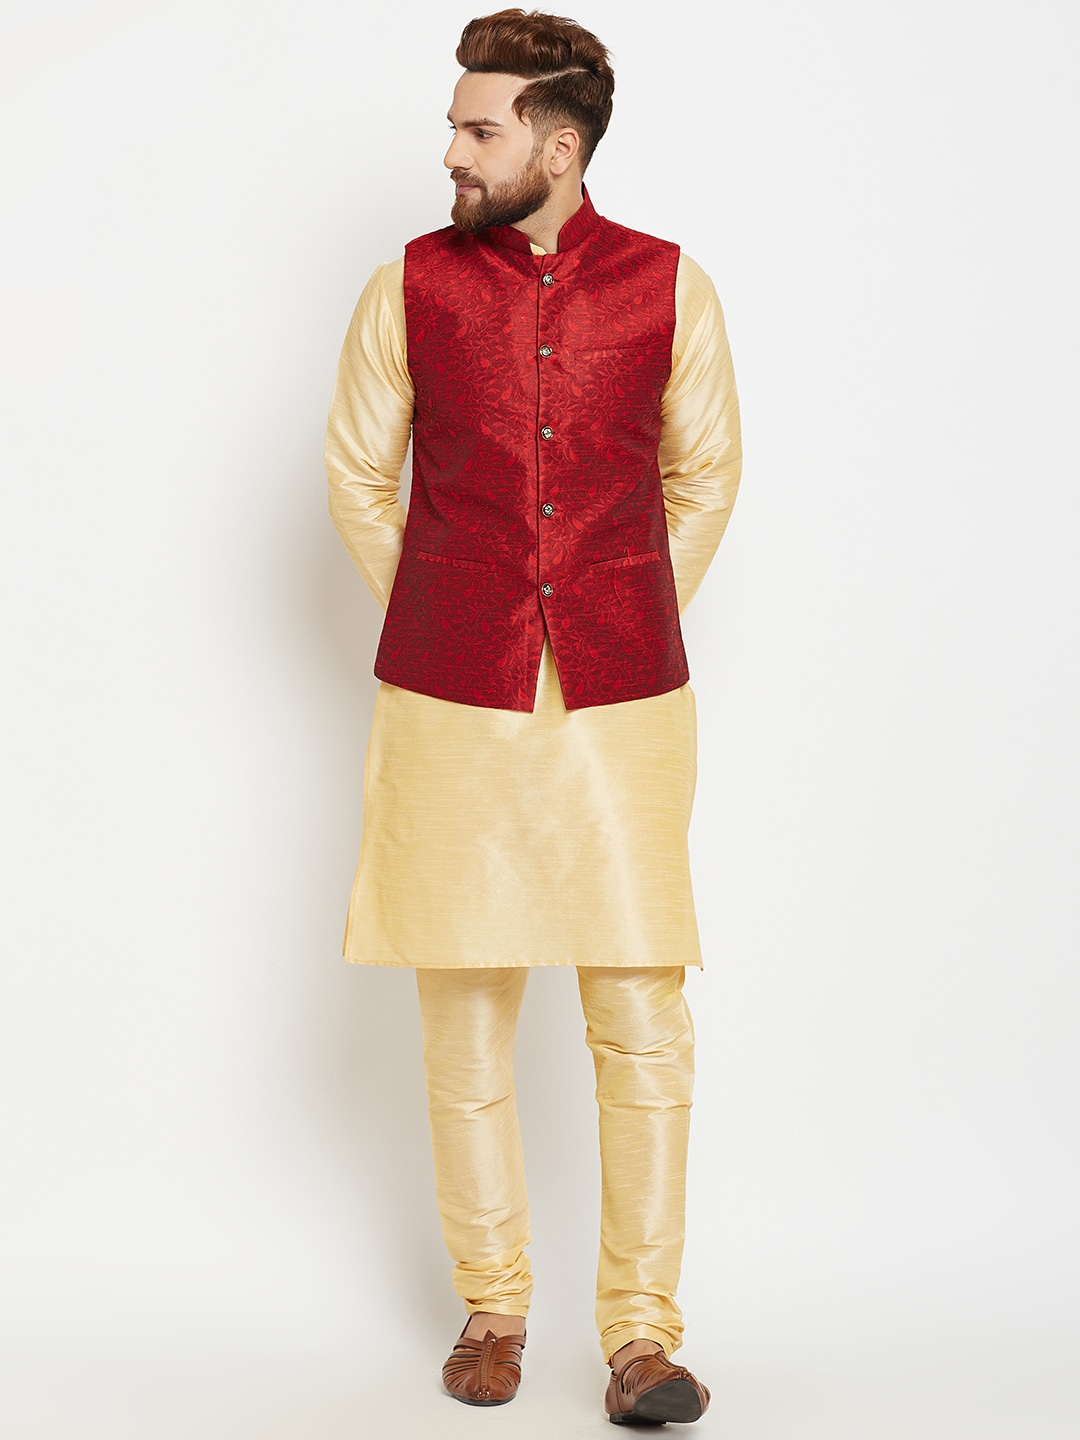 SOJANYA Men Gold-Toned & Maroon Self Design Kurta Pyjamas with Waistcoat image